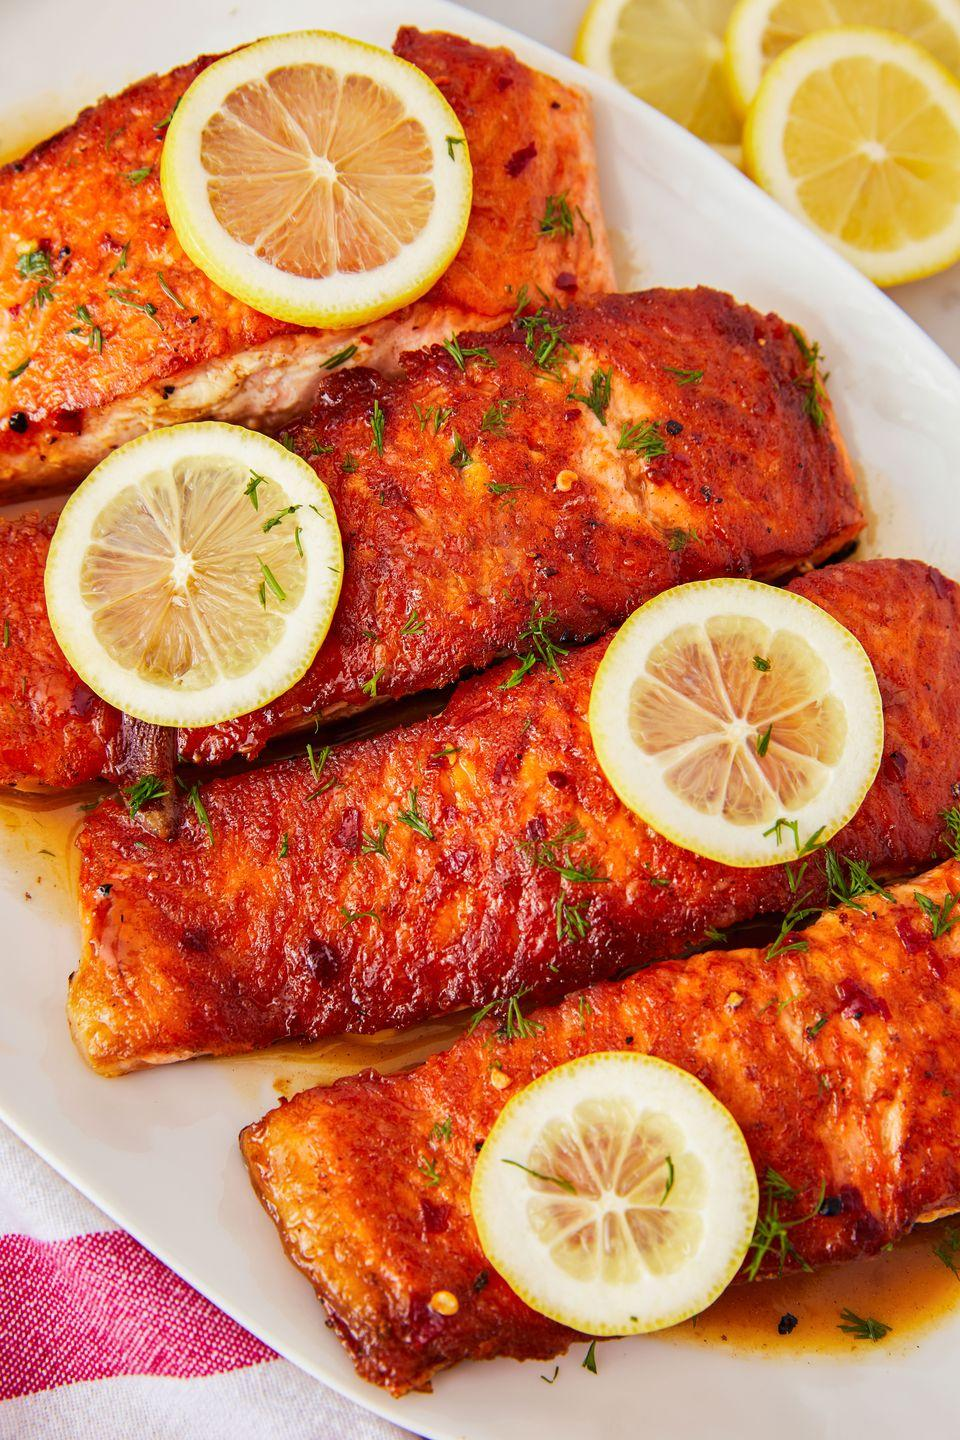 """<p>Perfect salmon, every single time. </p><p>Get the recipe from <a href=""""https://www.delish.com/cooking/recipe-ideas/a23570664/pan-fried-salmon/"""" rel=""""nofollow noopener"""" target=""""_blank"""" data-ylk=""""slk:Delish"""" class=""""link rapid-noclick-resp"""">Delish</a>. </p>"""